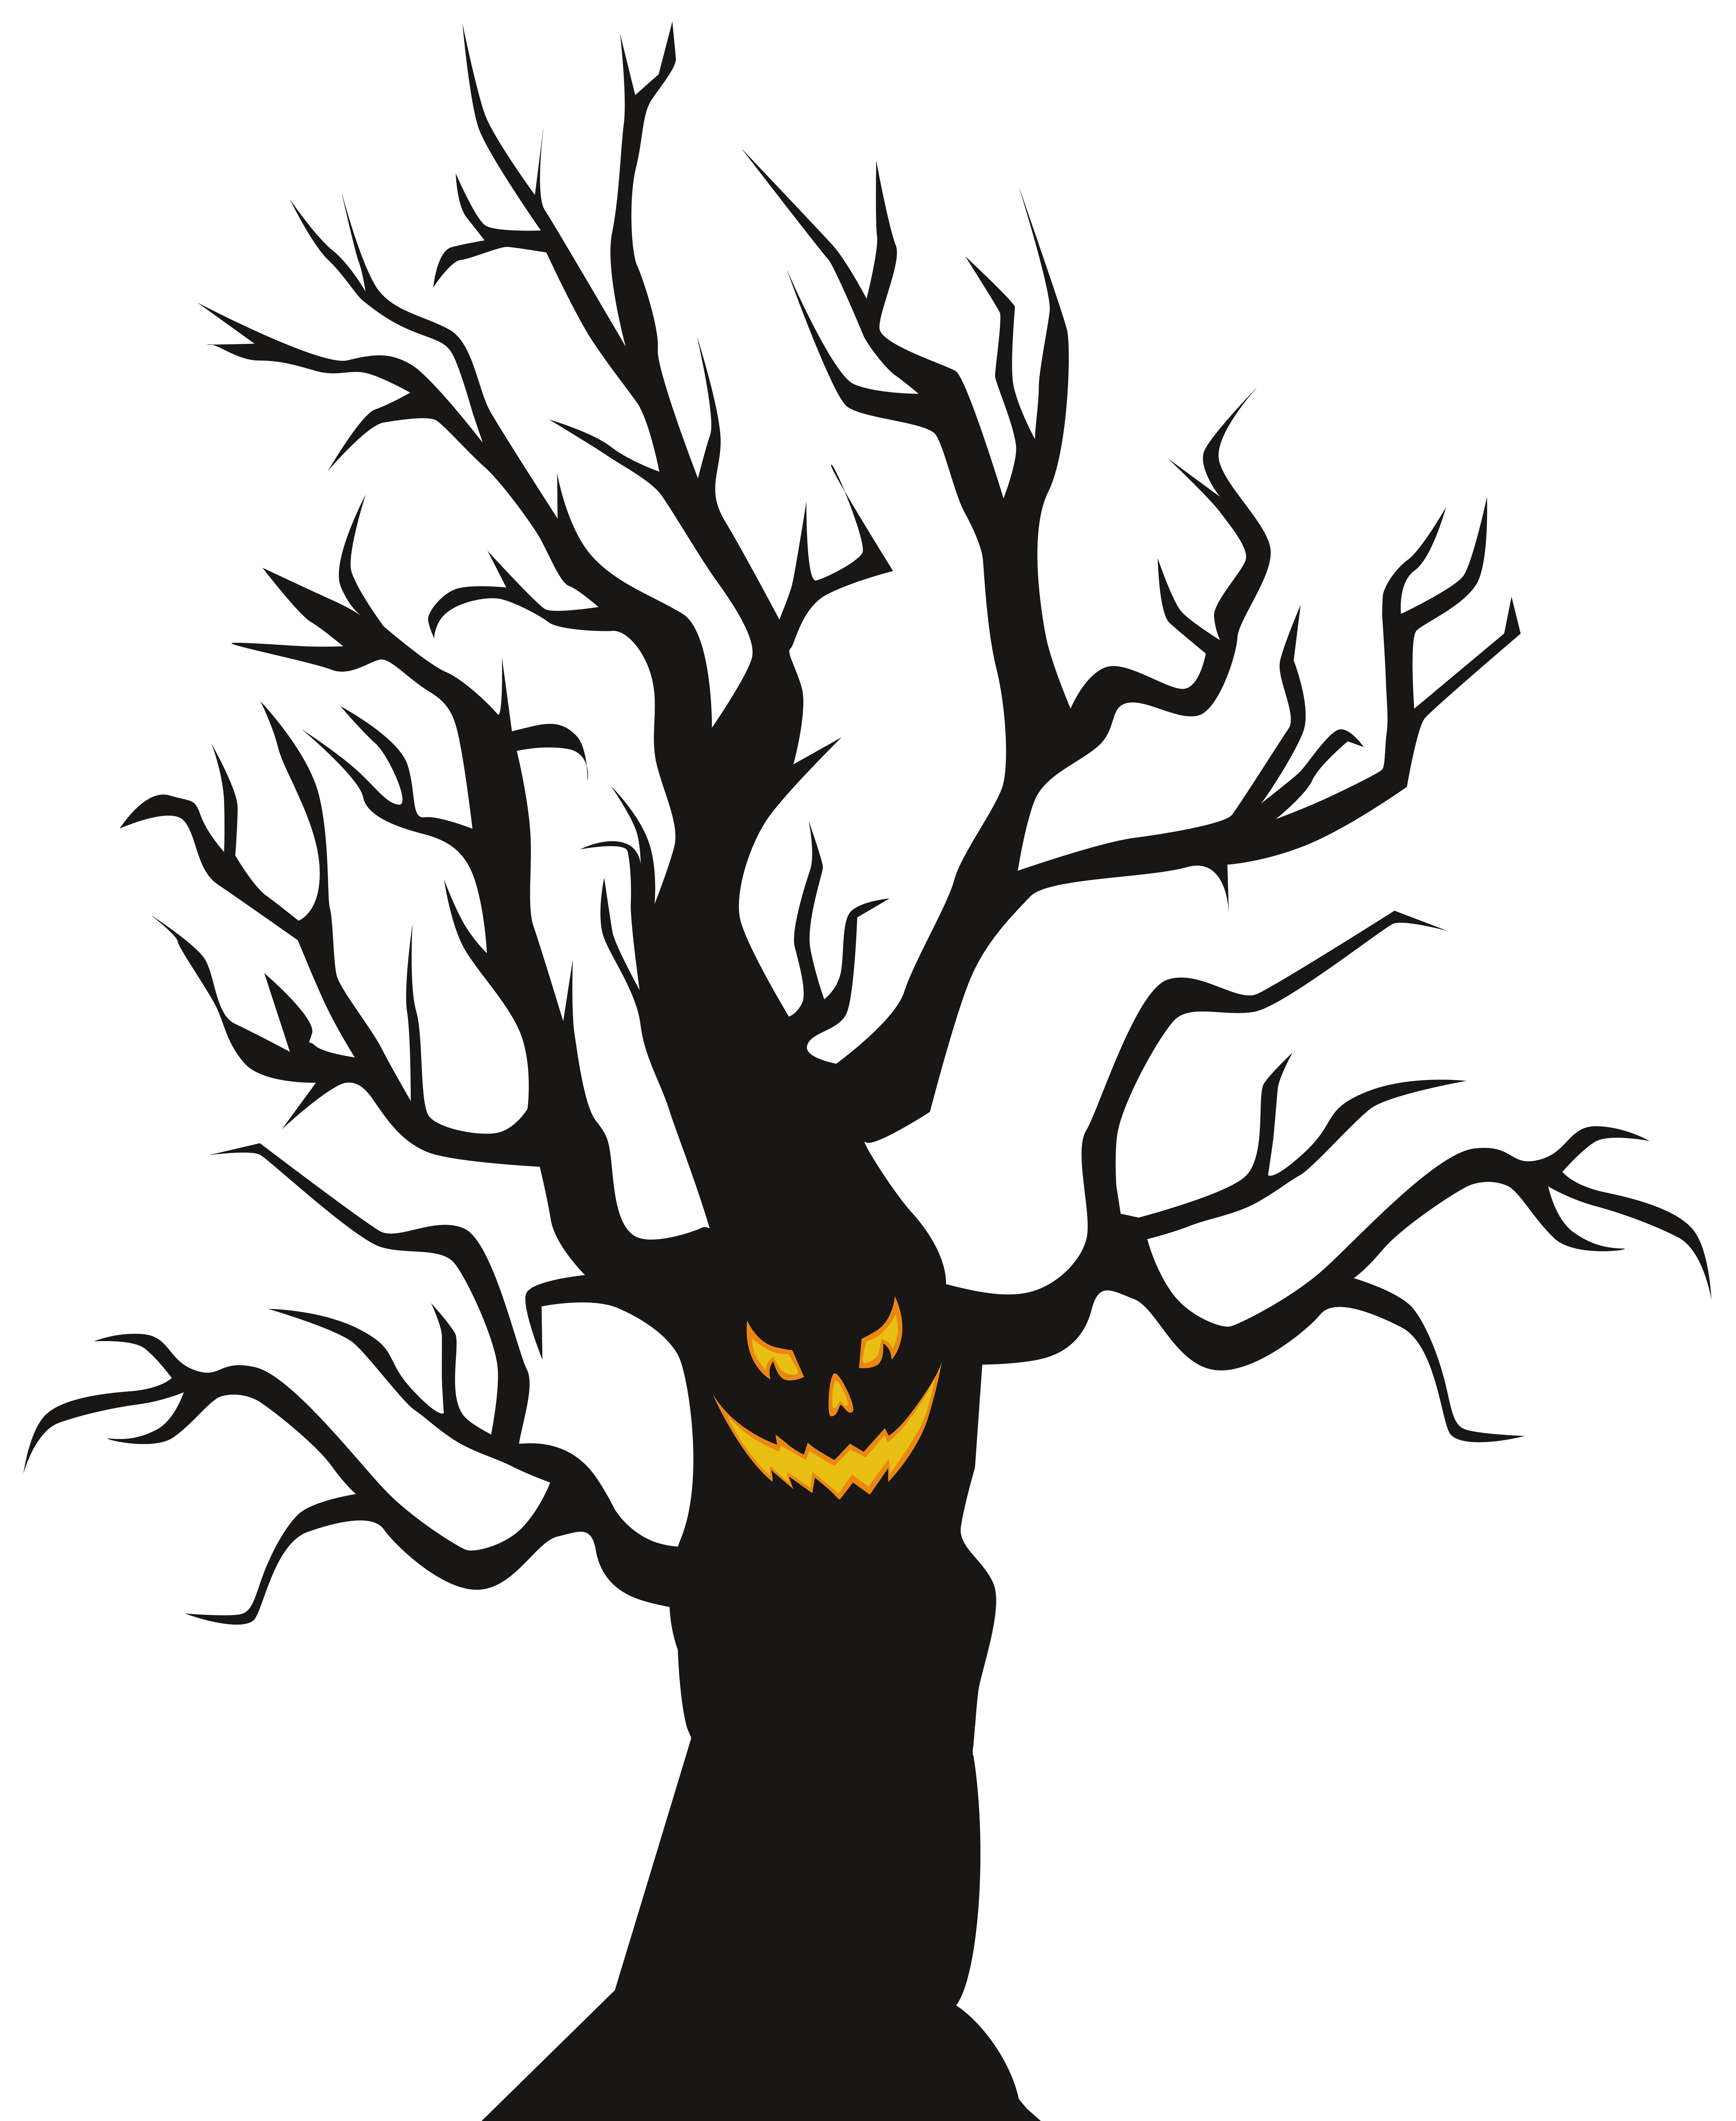 Scary halloween png. Tree clip art image